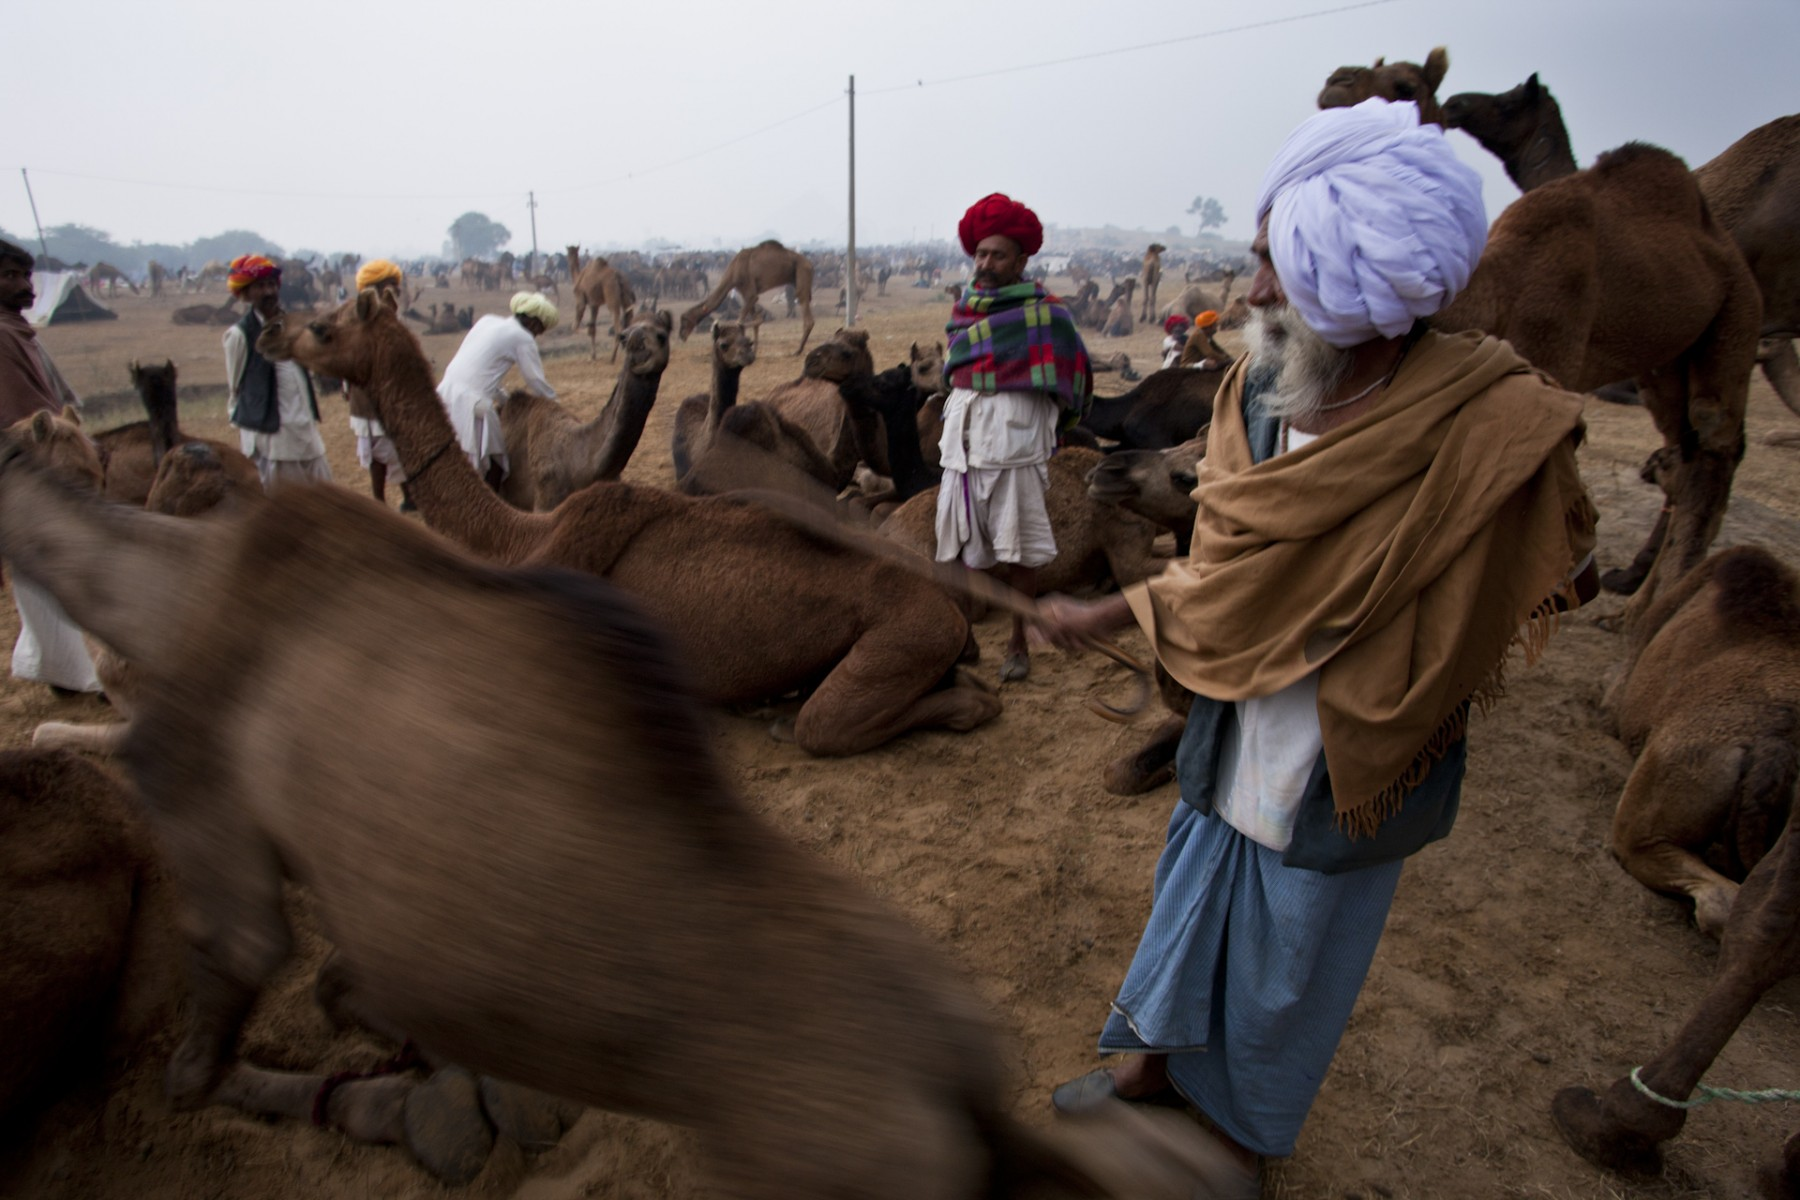 Inspecting the camels at Pushkar